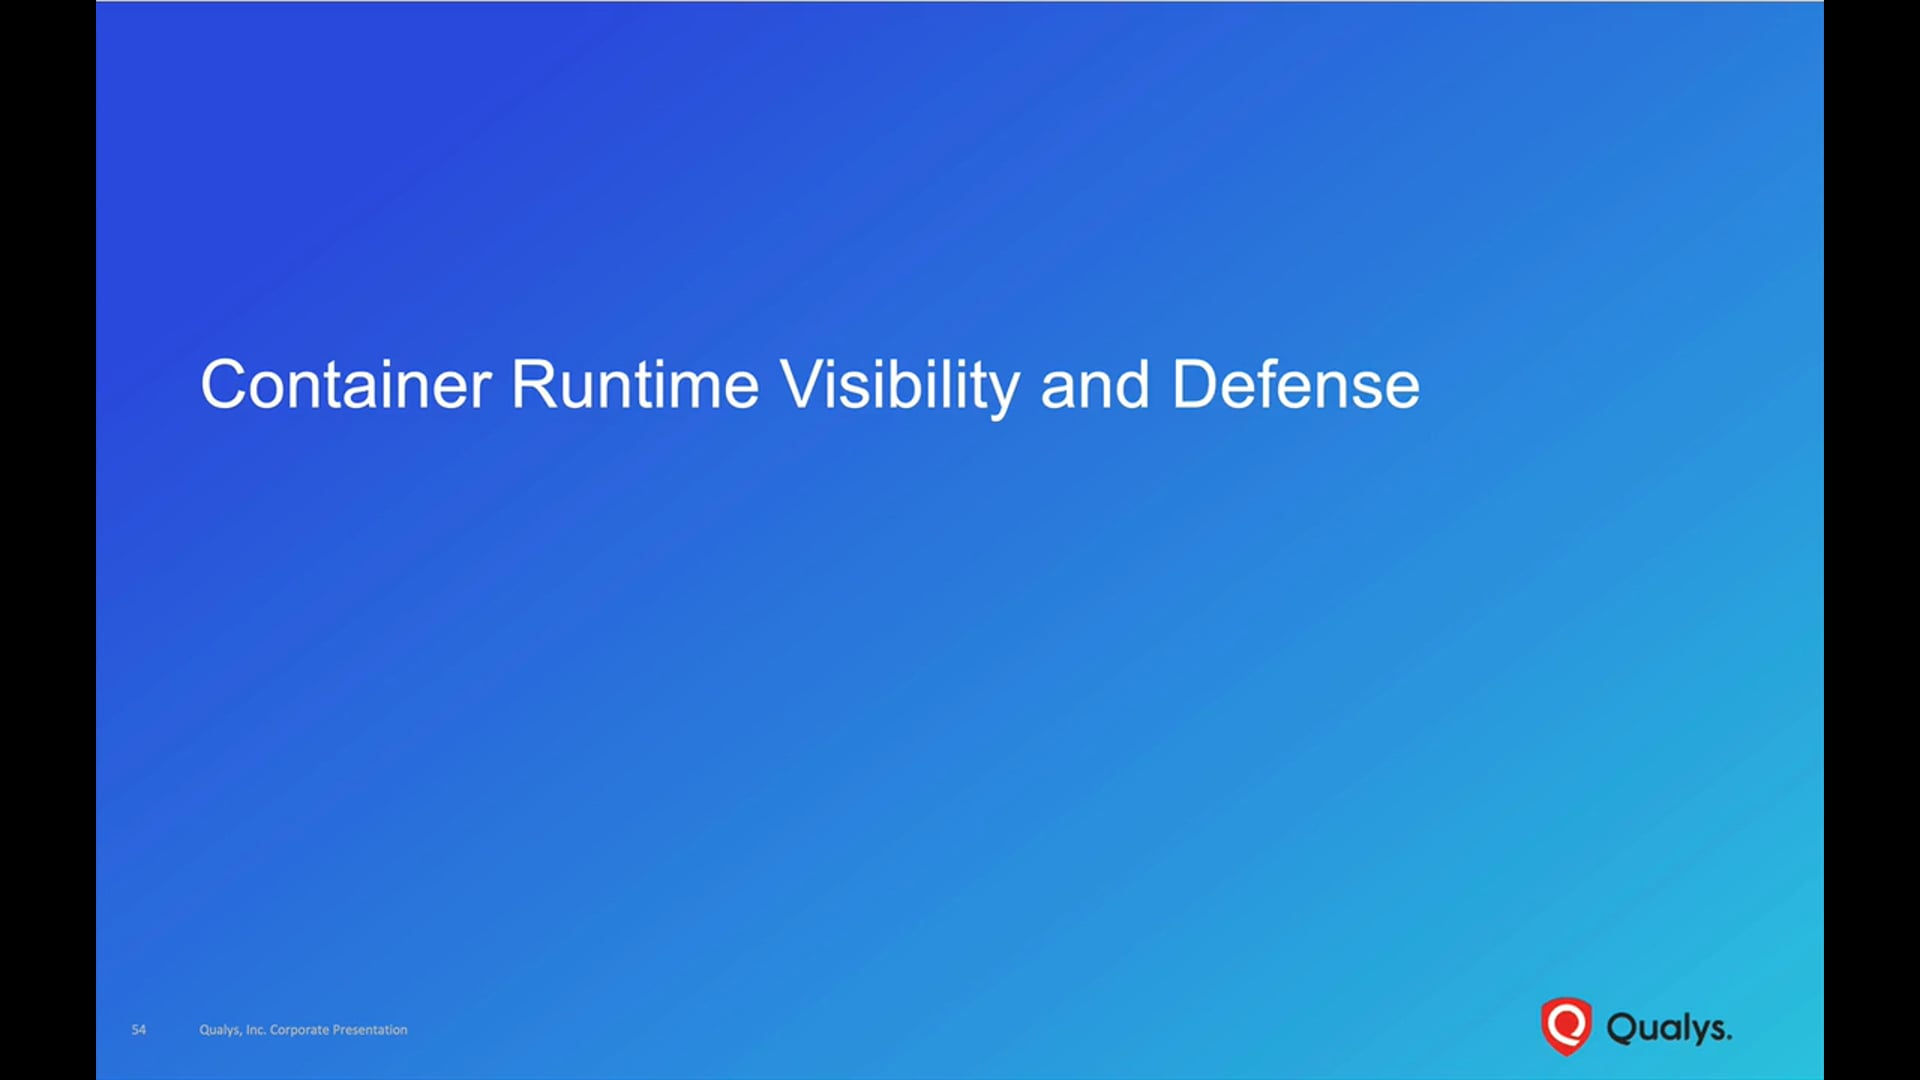 Container Runtime Visibility and Defense